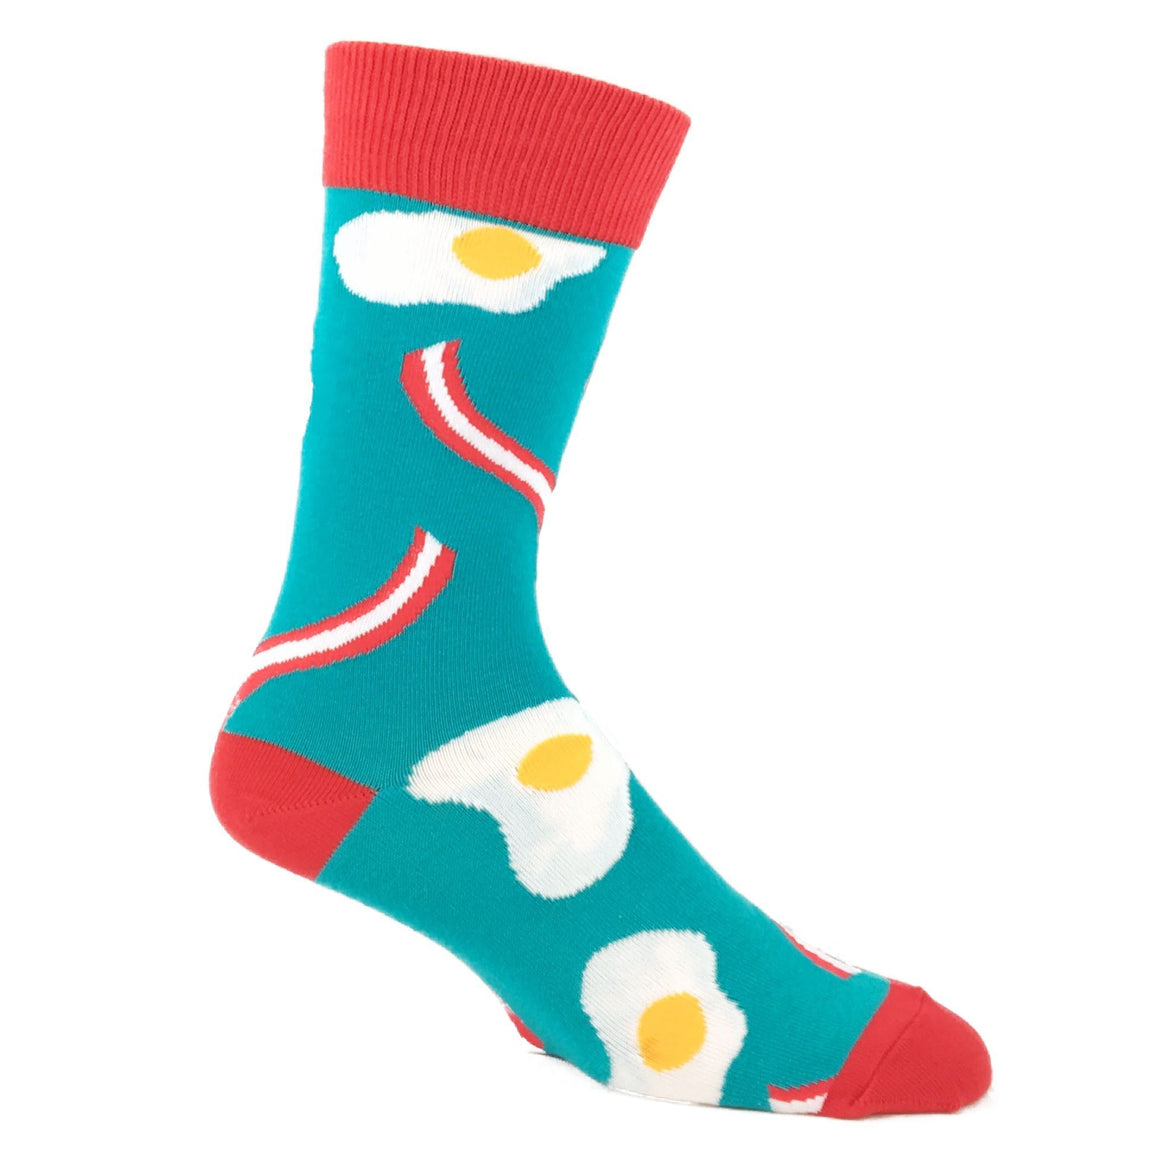 Eggs and Bacon Food Socks in Teal by SockSmith - The Sock Spot